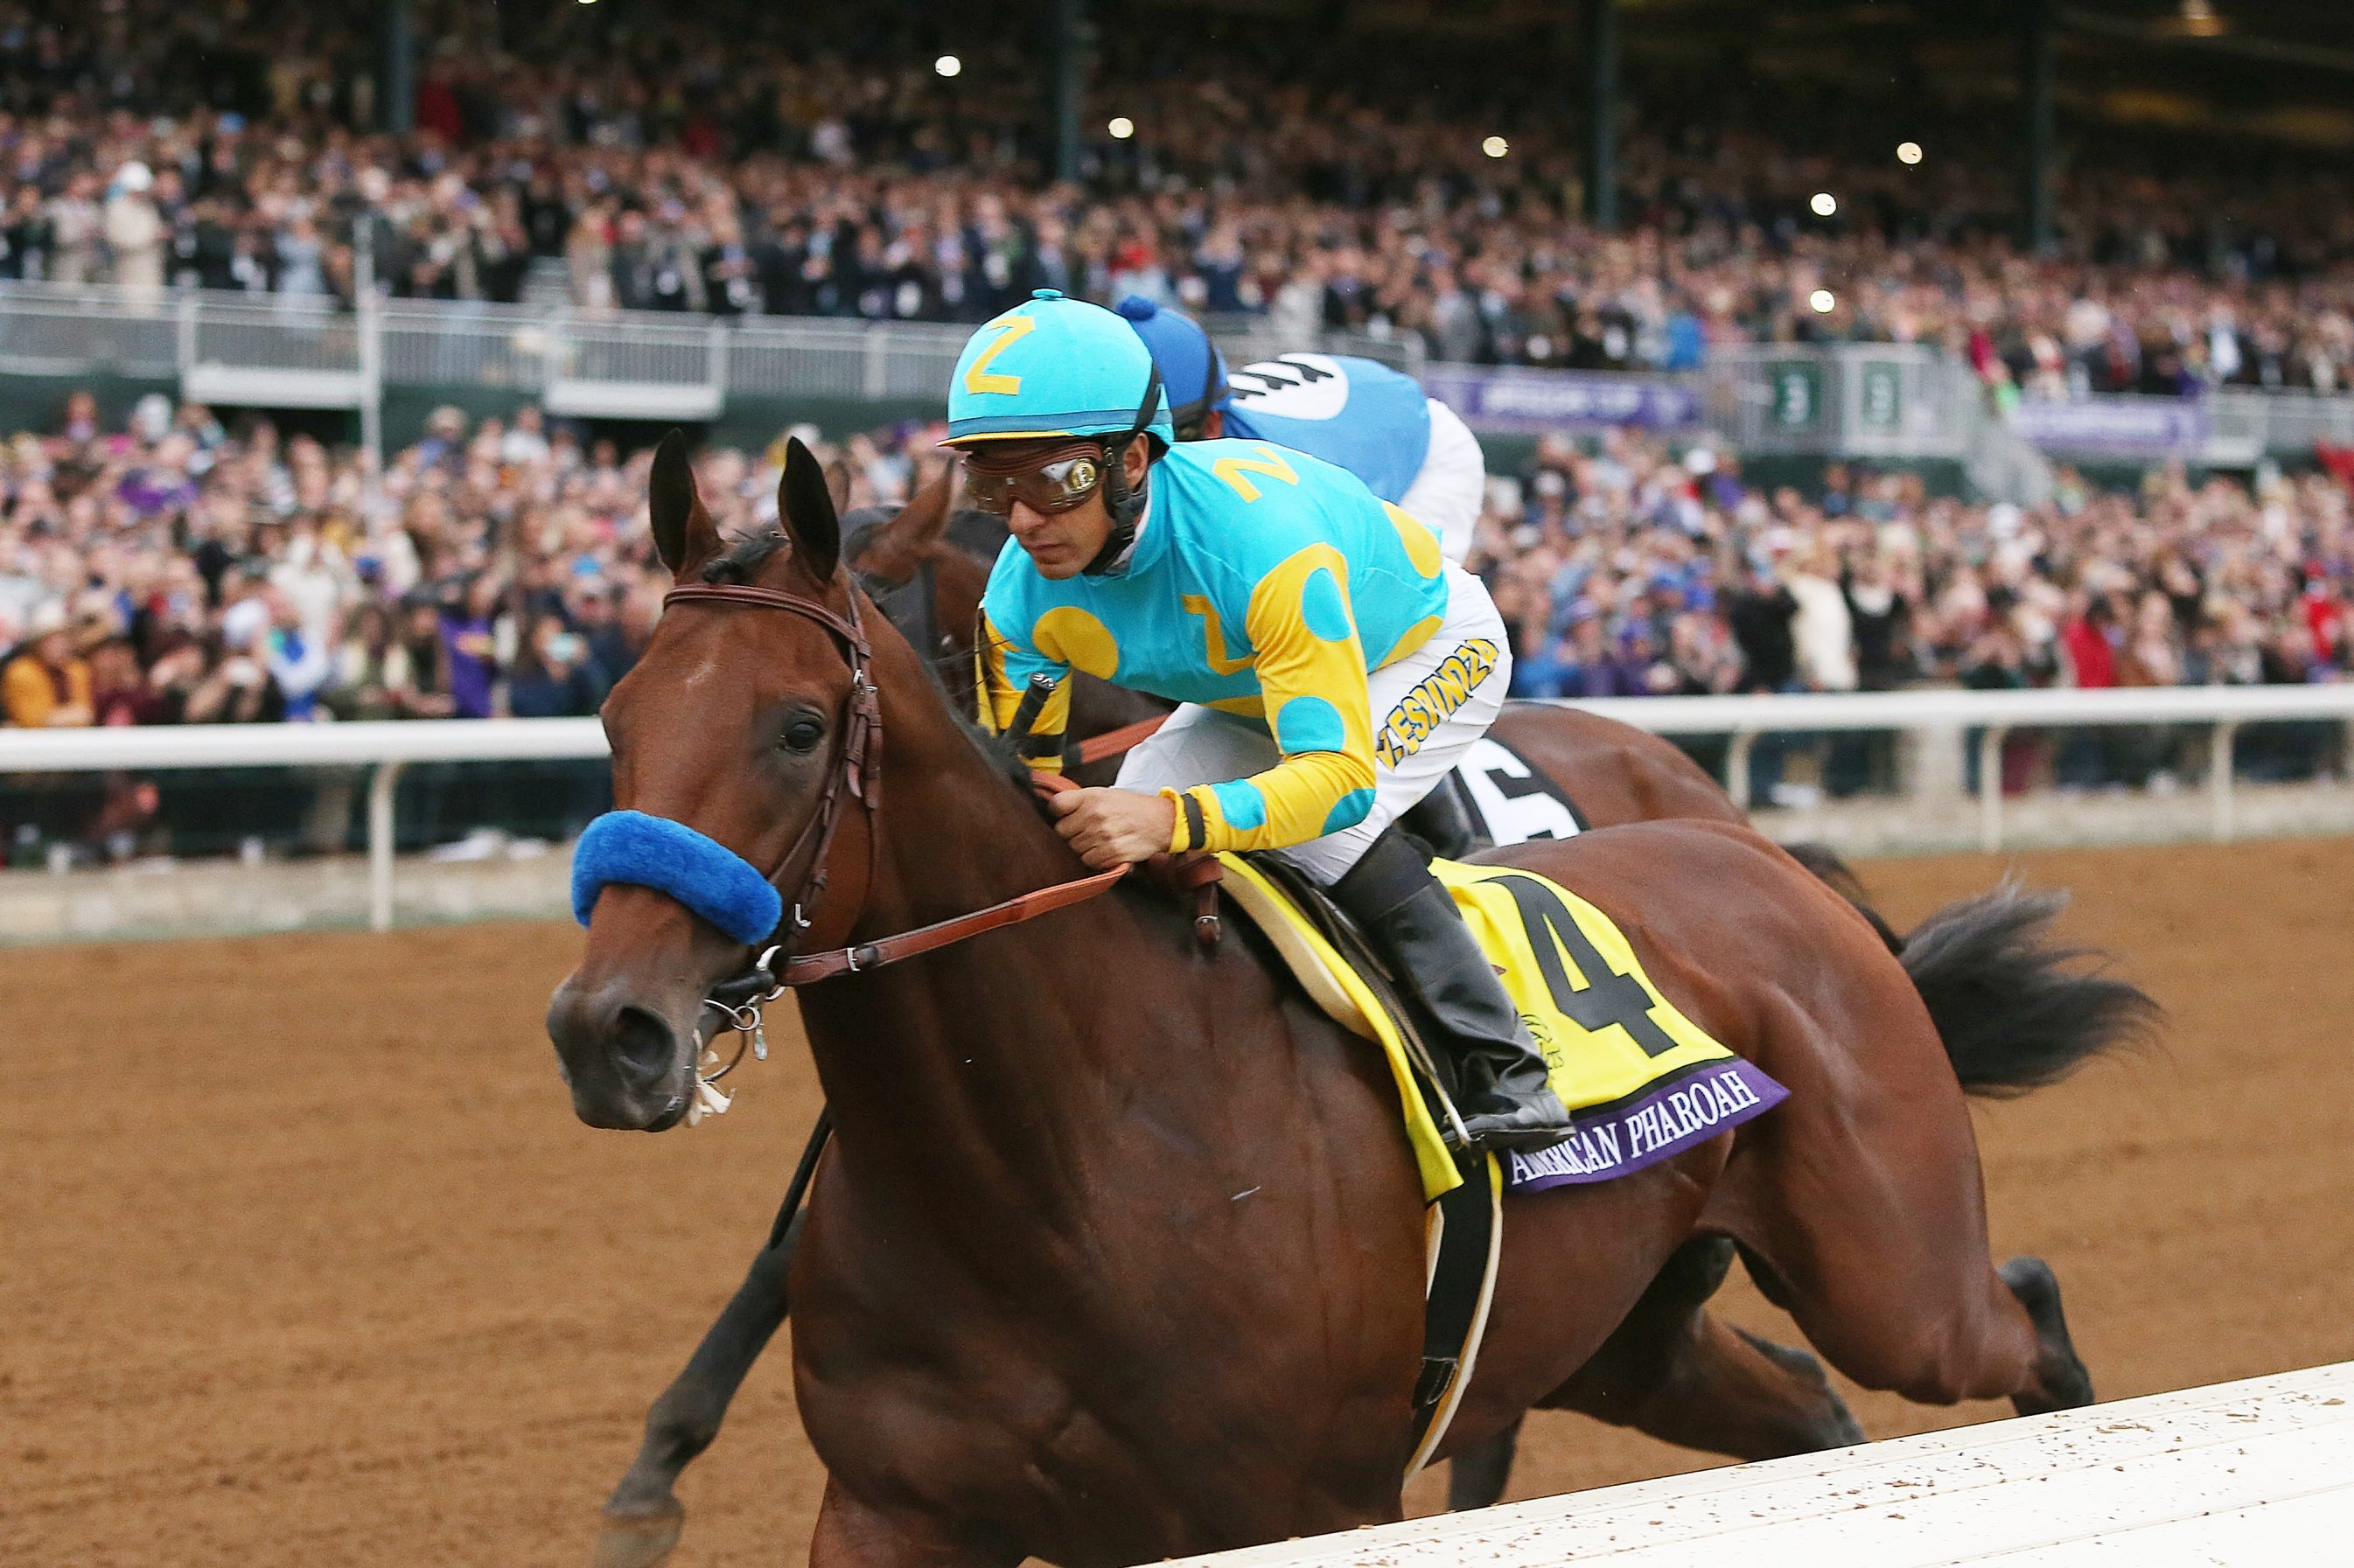 American Pharoah, with jockey Victor Espinoza up, leads the field heading into the first turn of the Breeders' Cup Classic.